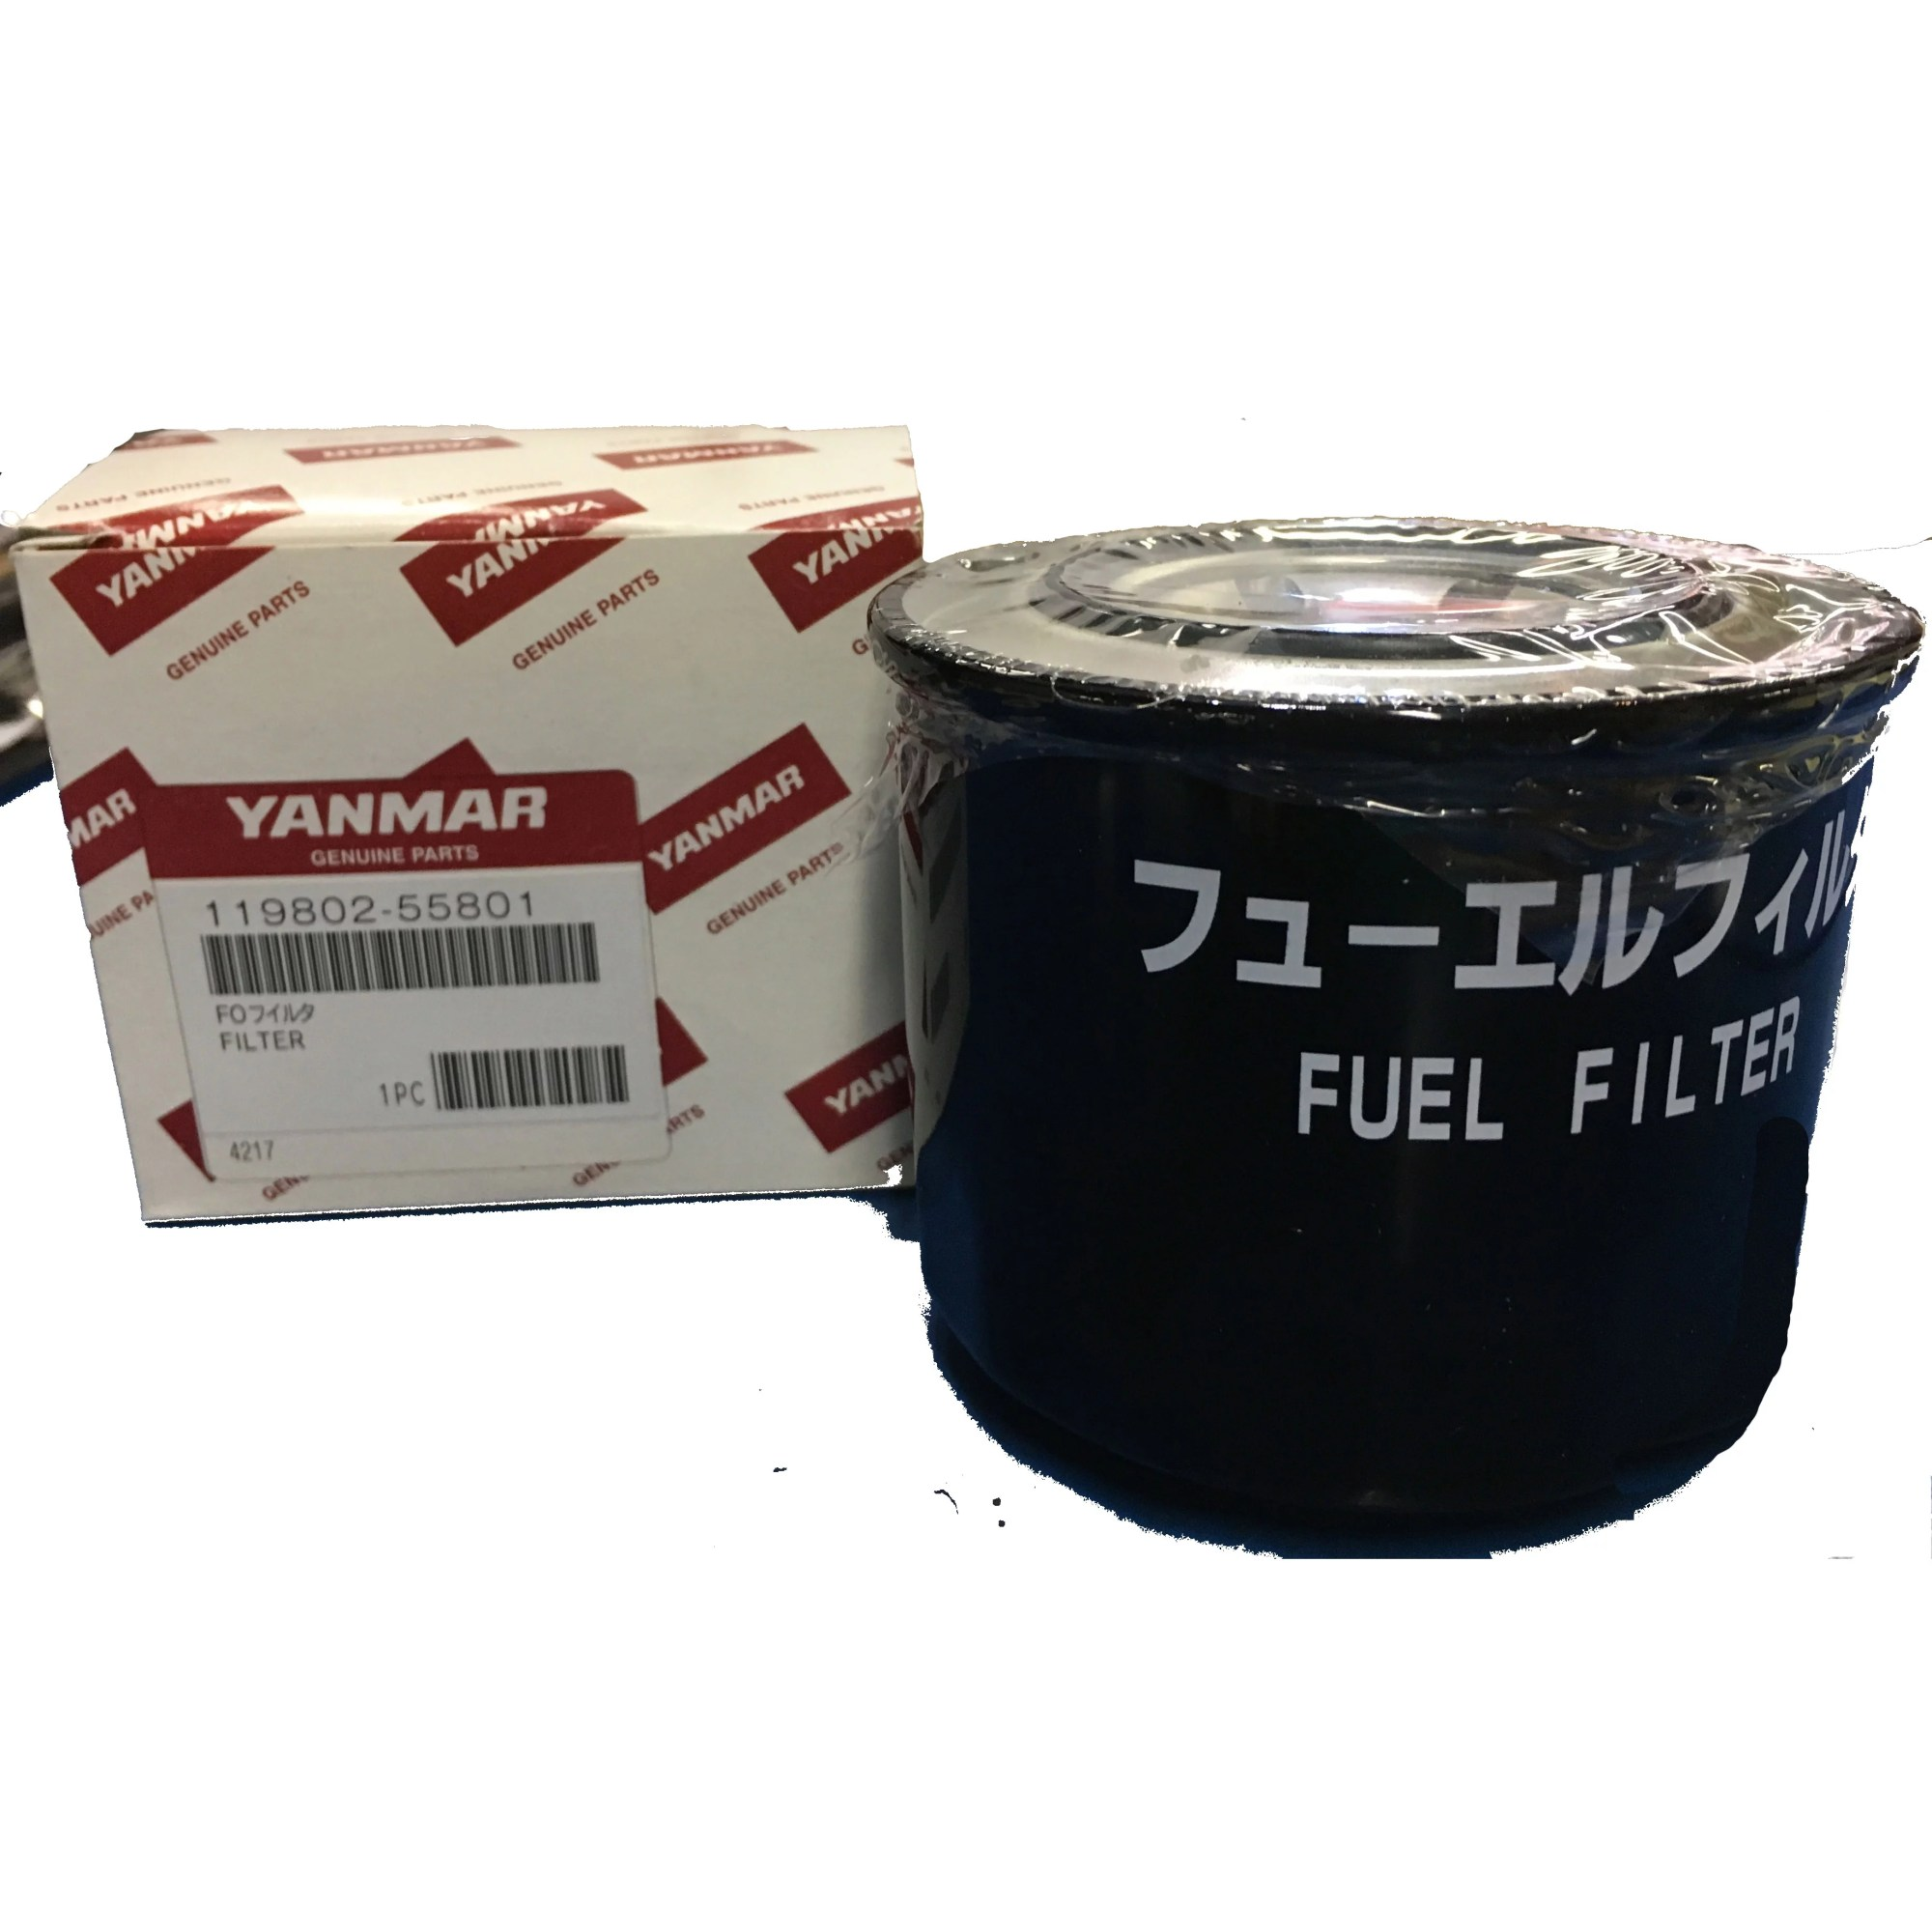 hight resolution of yanmar 119802 55810 119802 55801 fuel filter